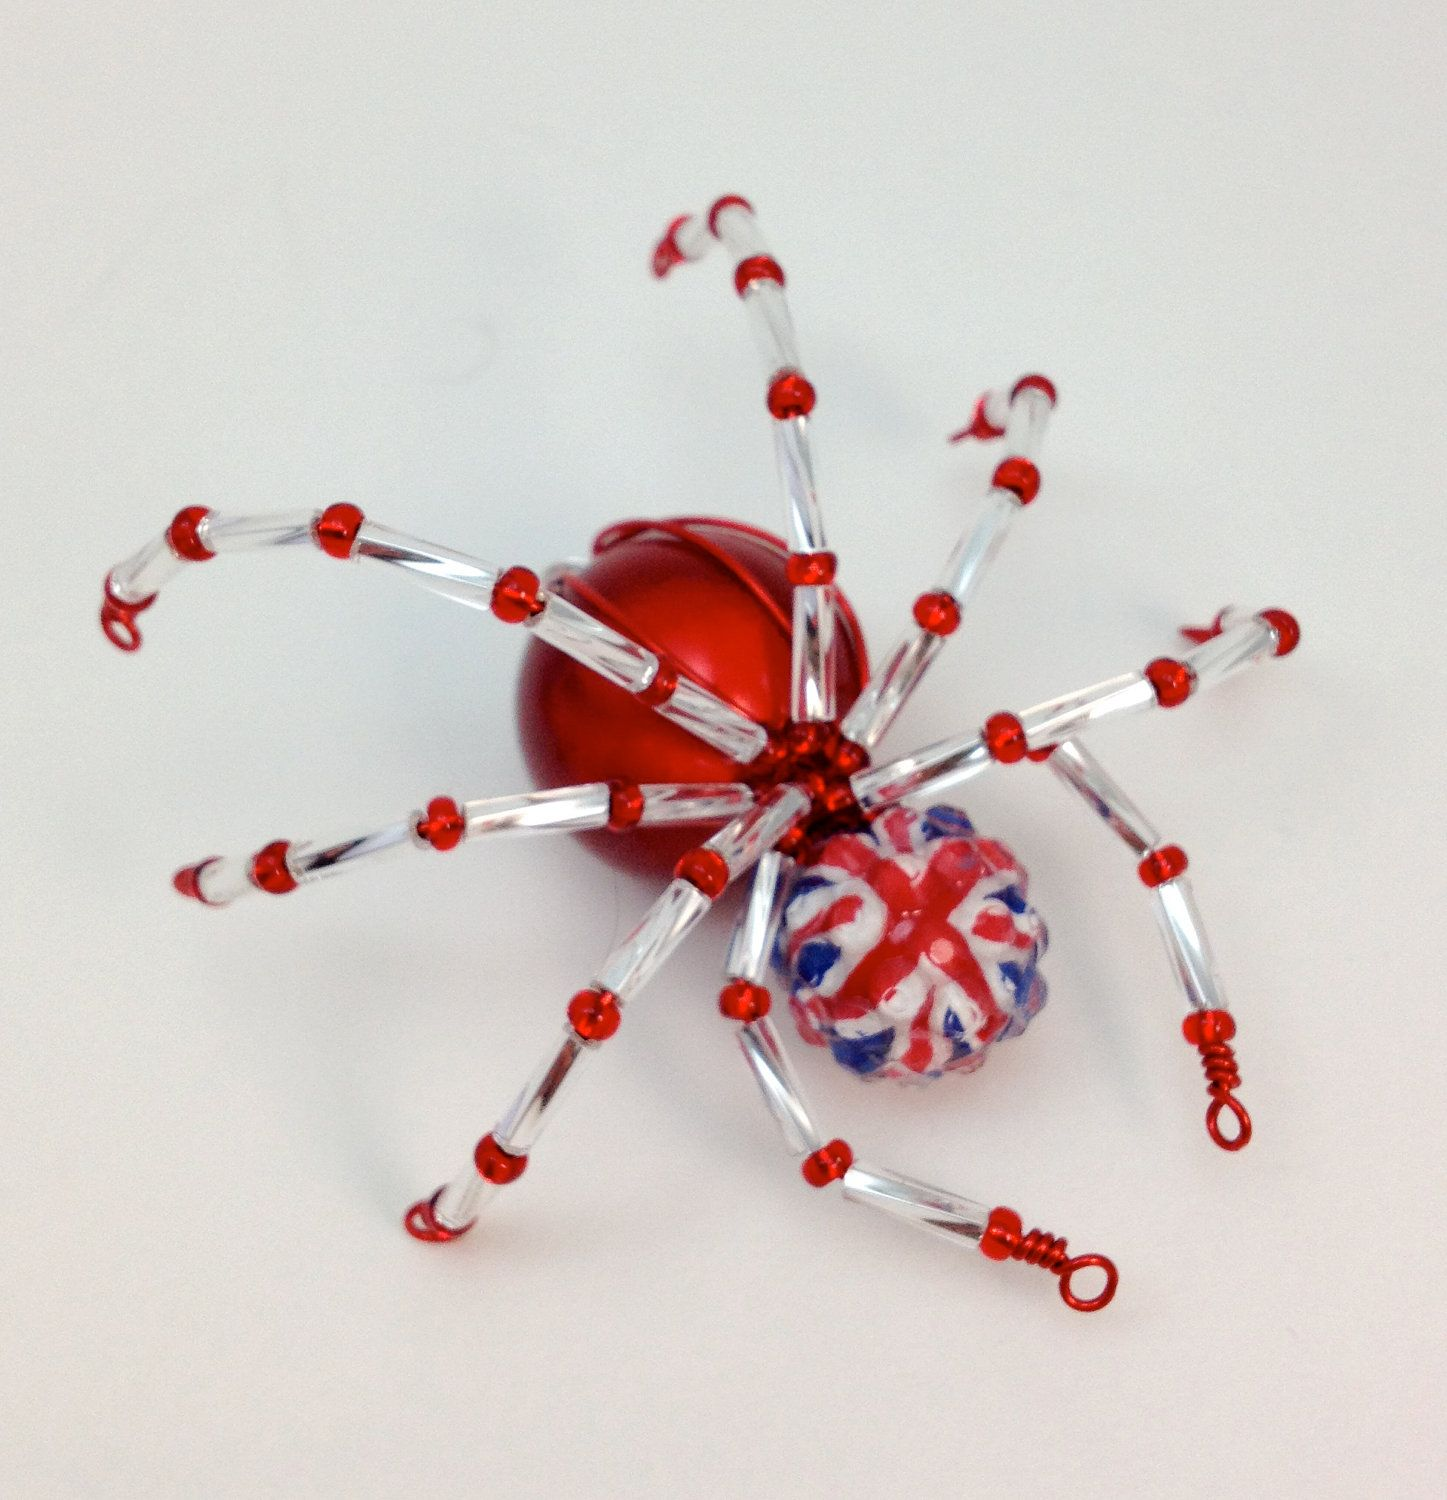 Red, White & Blue Spider Pendant - Union Flag - UK Patriotic. £4.50 ...